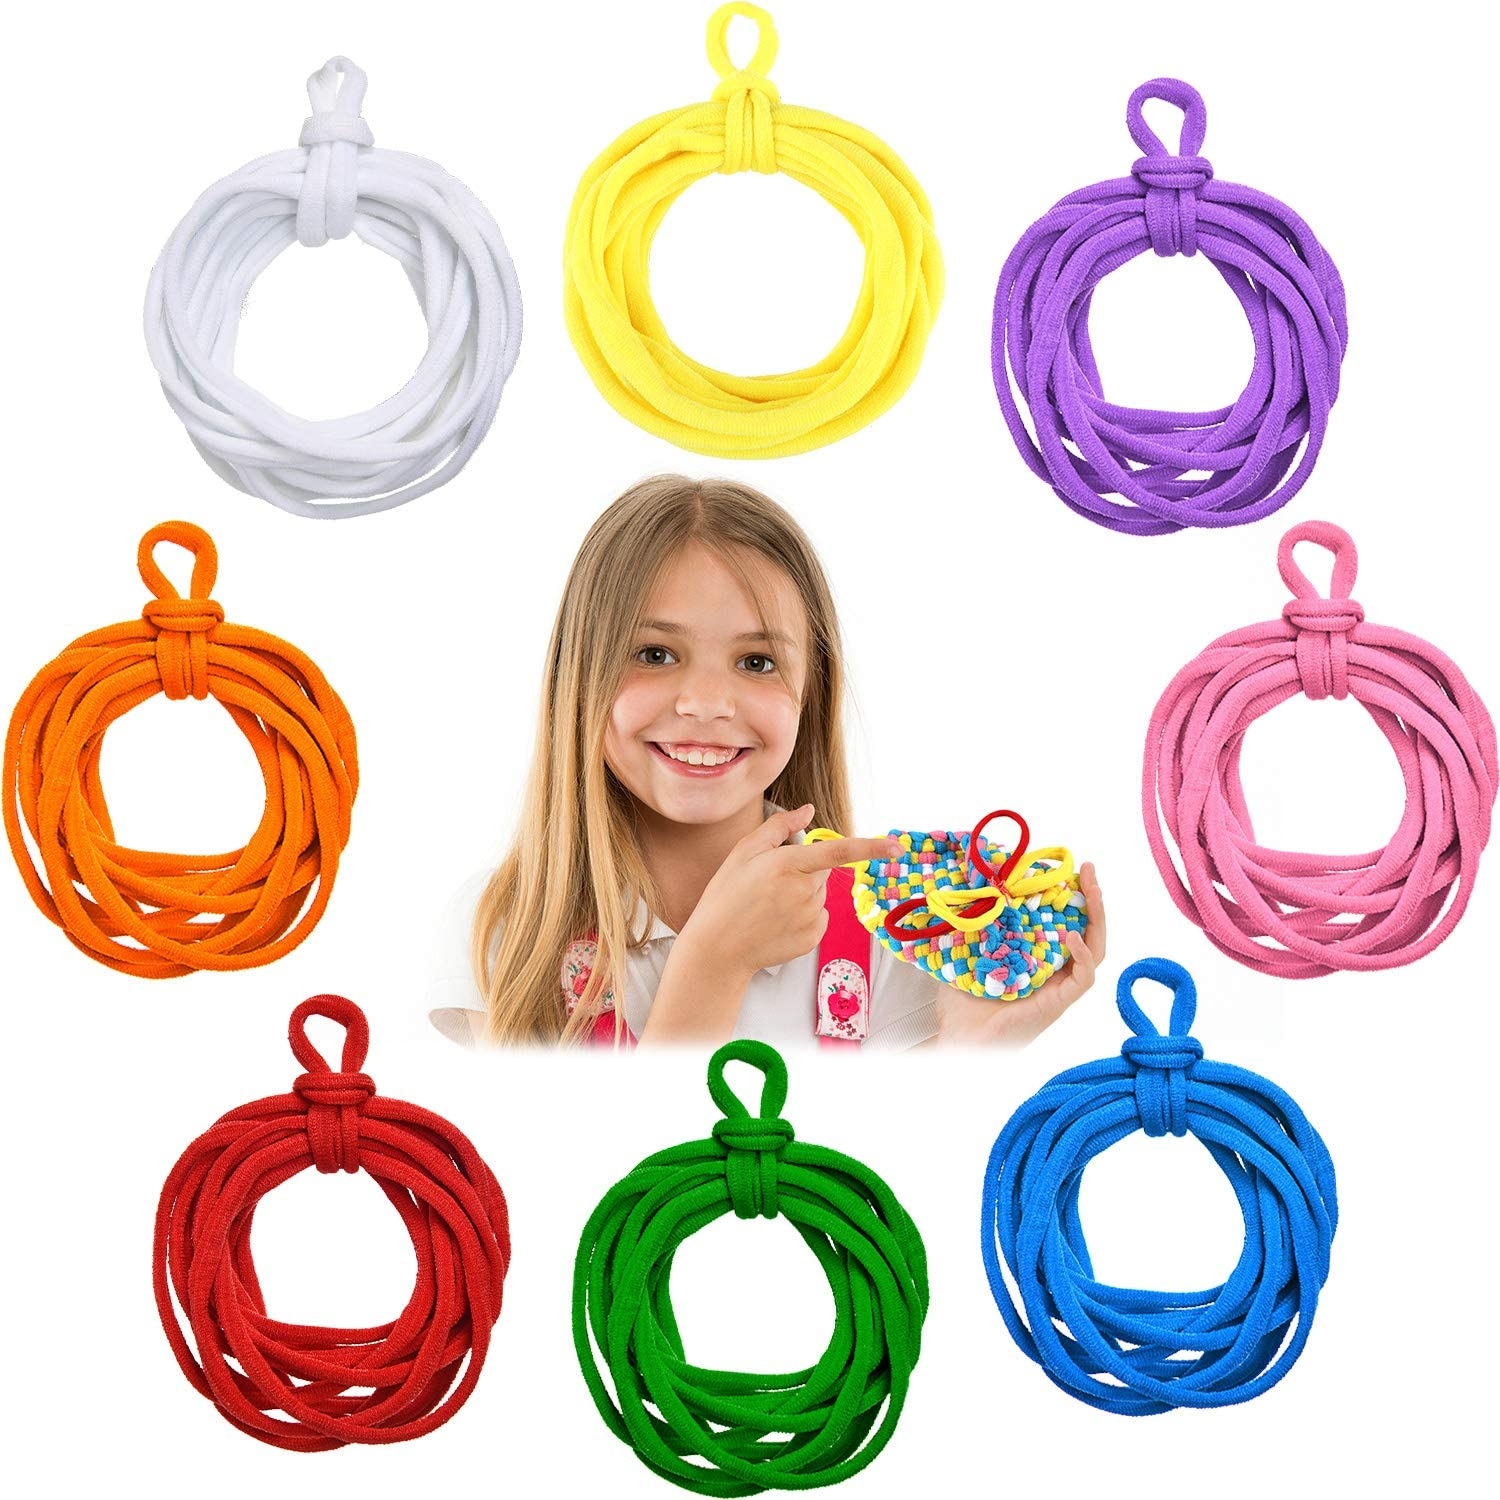 192 Pieces Loom Potholder Loops Refill 7 Inch Weaving Loom Loops Weaving Craft Loops with Multiple Colors Weaving Craft for DIY Crafts Supplies